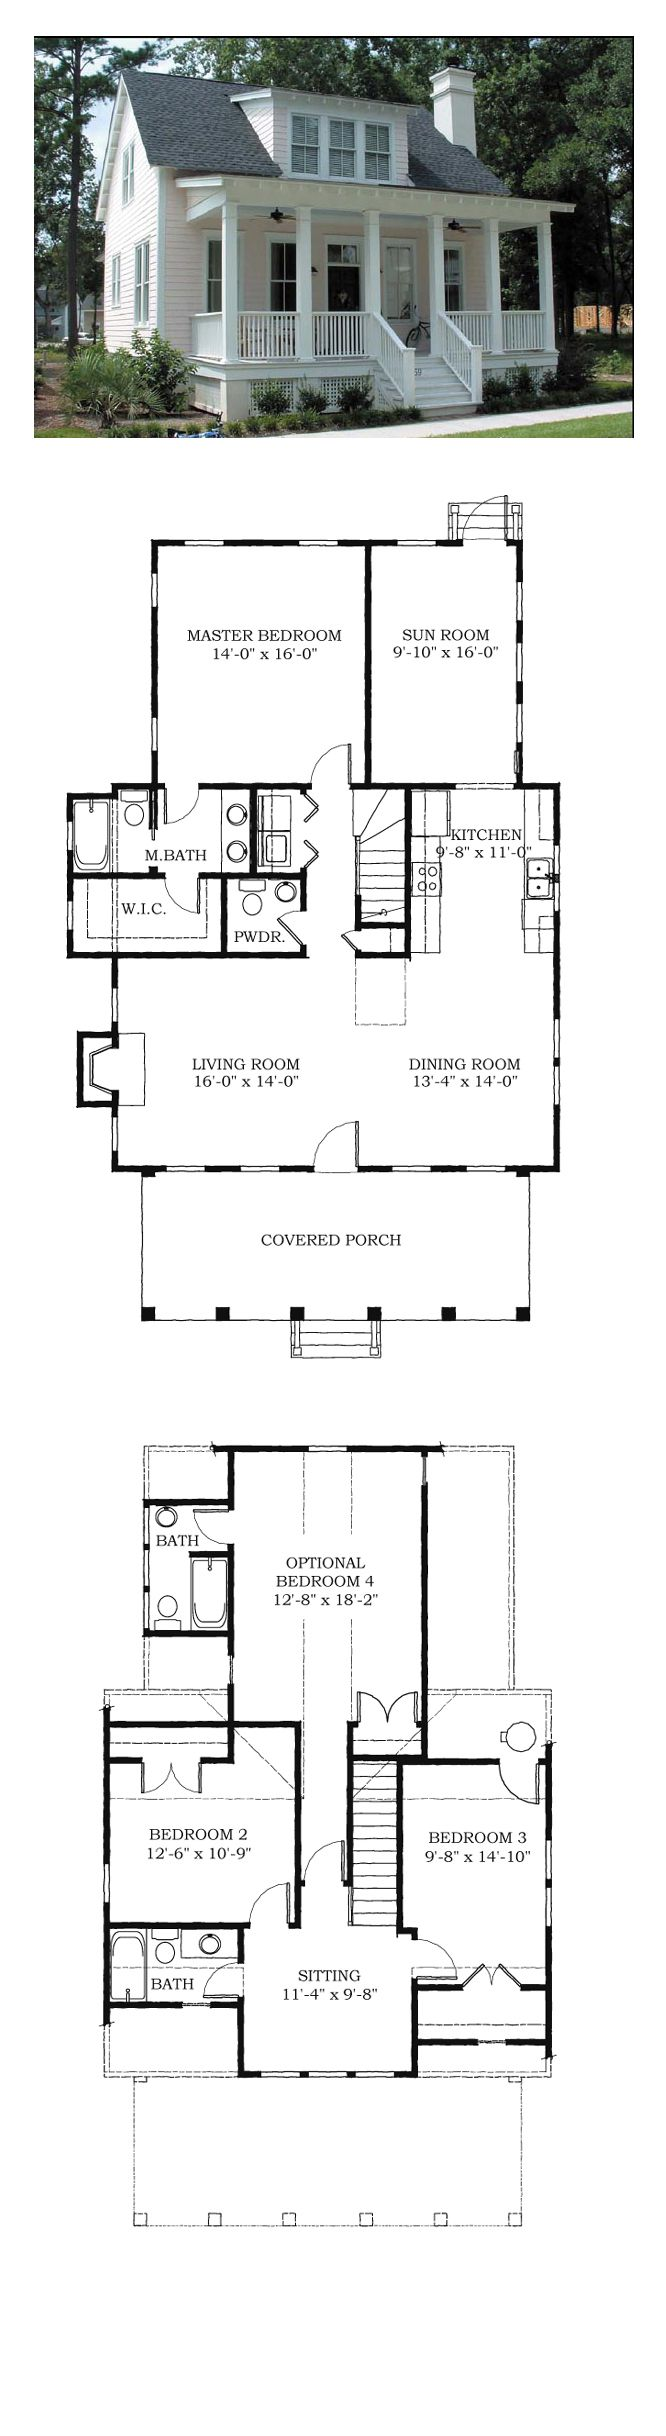 tiny home designs plans. COOL House Plan ID  chp 38703 Total Living Area 1783 sq Best 25 Tiny house plans ideas on Pinterest Small home